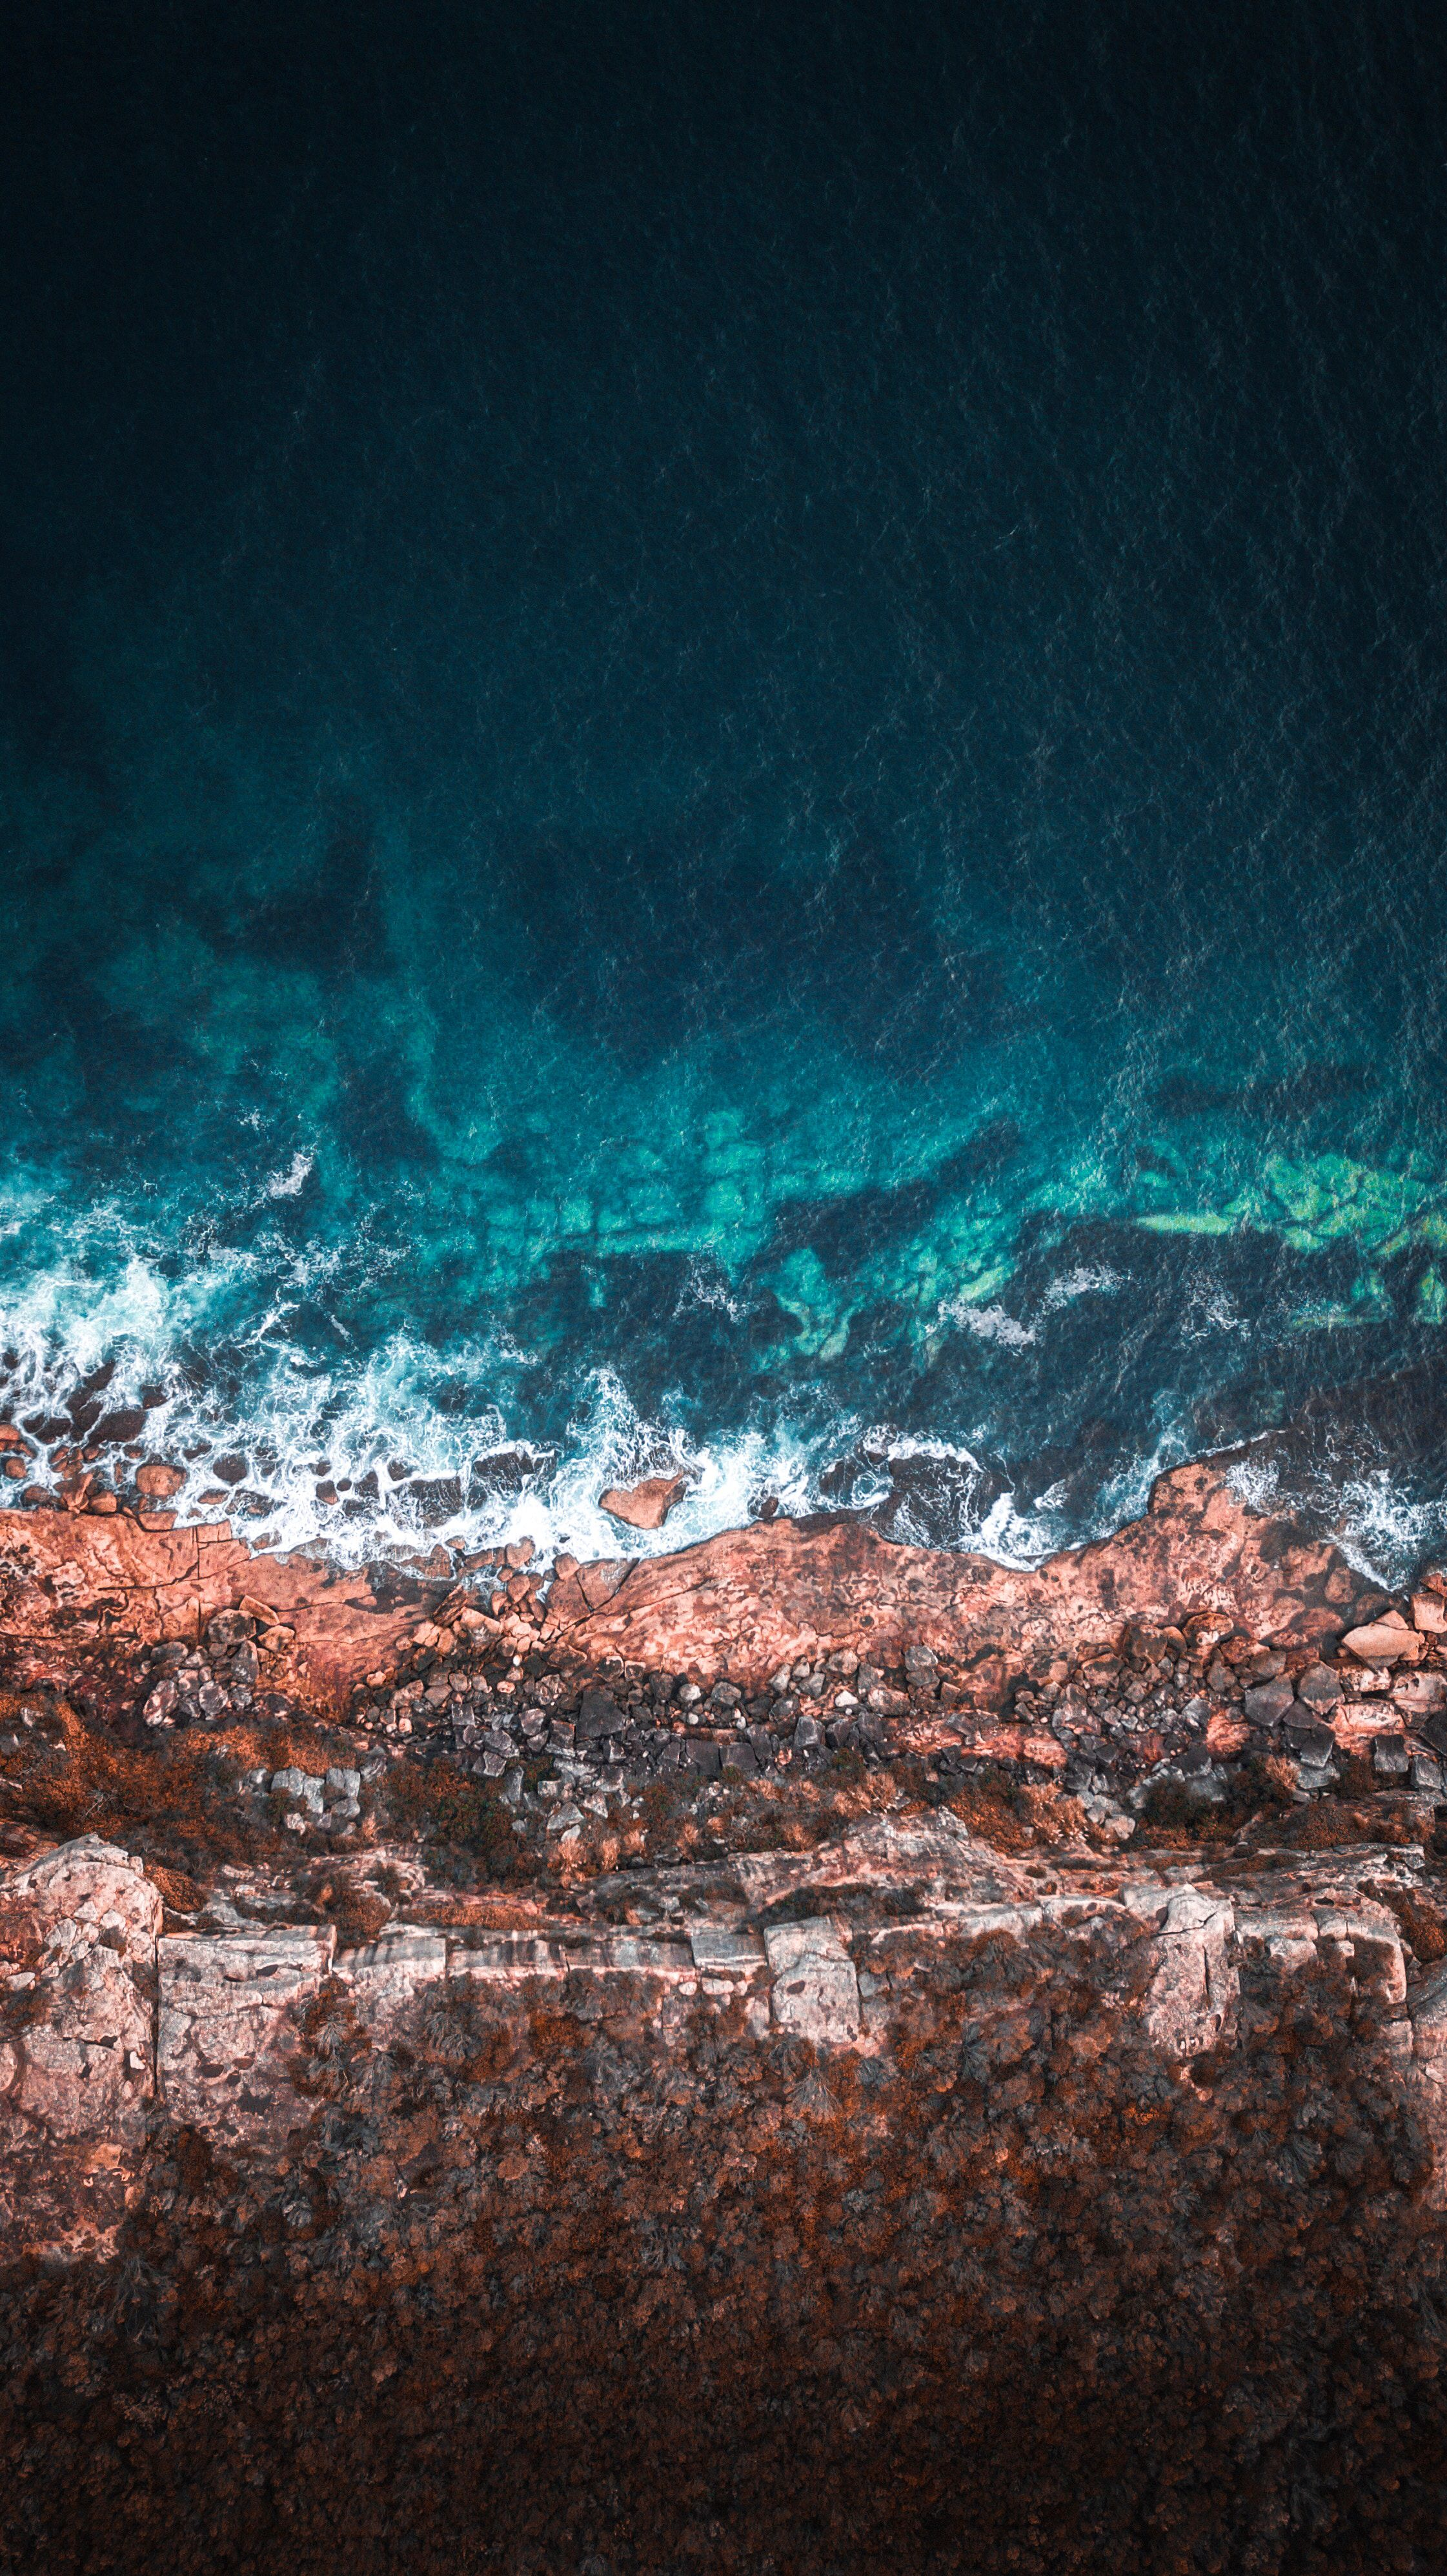 Pin by Nick on Ocean in 2019 | Iphone wallpaper unsplash, Iphone wallpaper, 4k wallpaper iphone